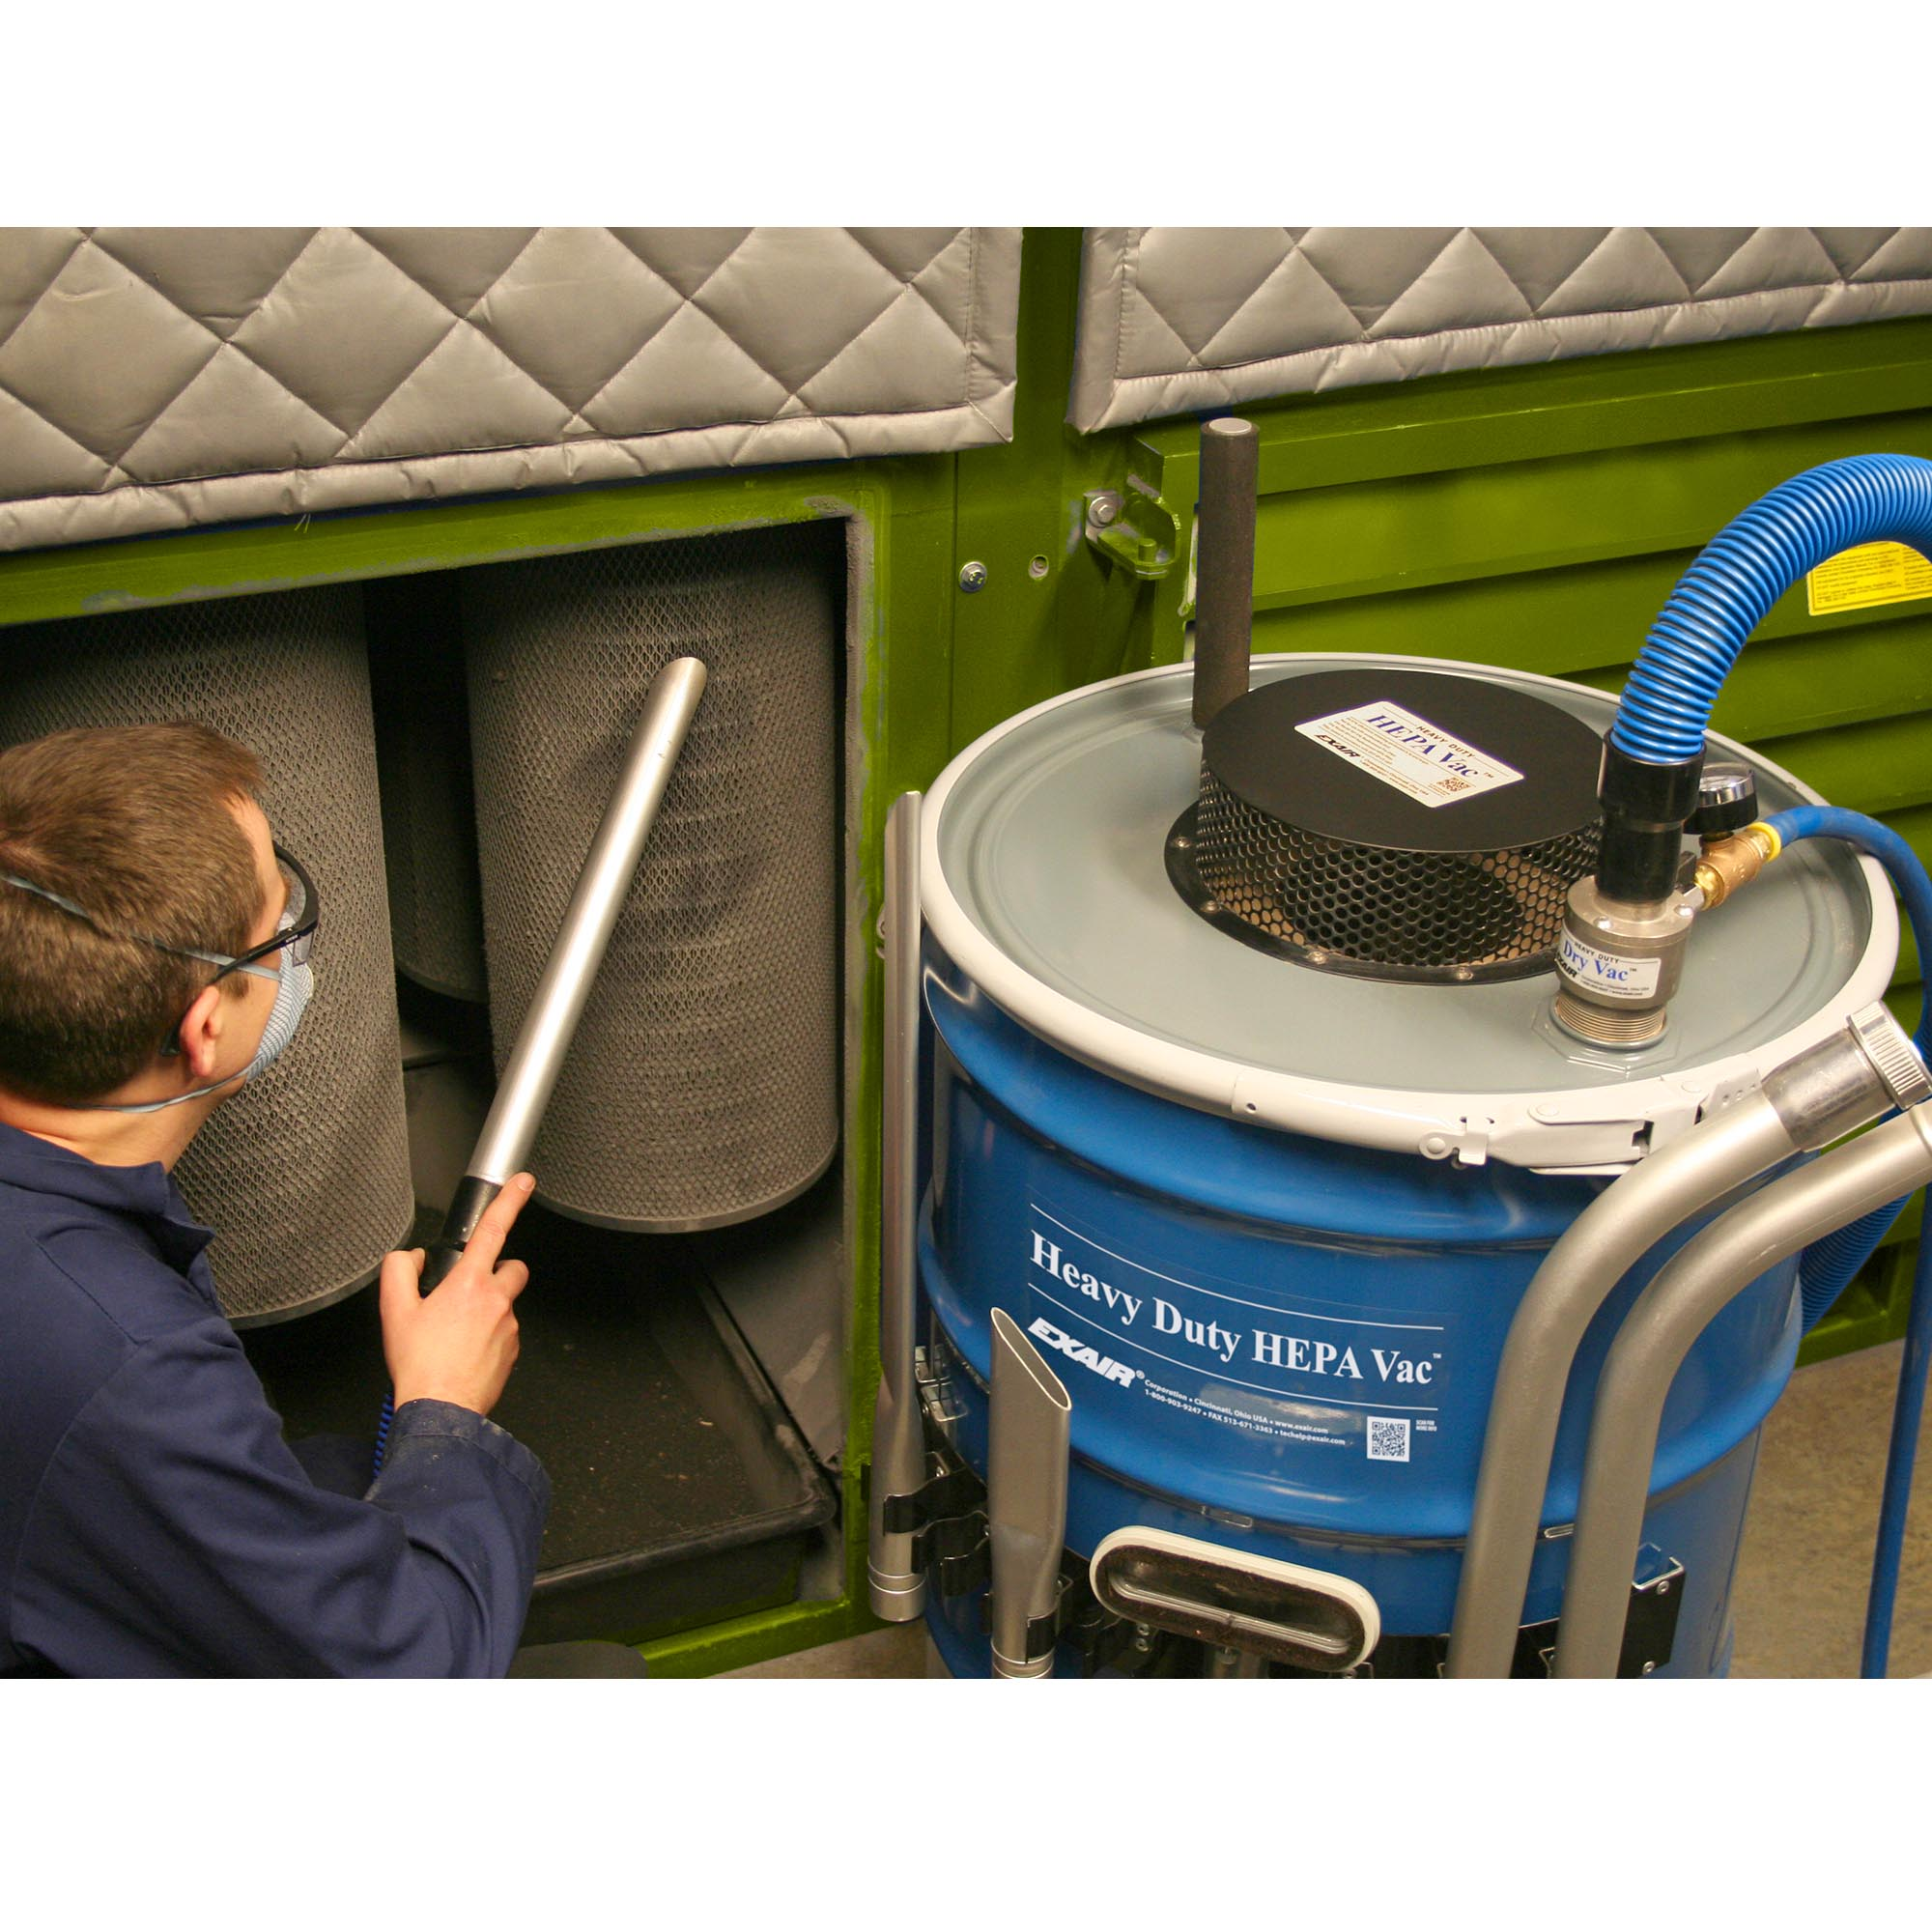 Heavy Duty HEPA Vacuum For 110 Gallon Drums removes large volumes of dusty debris and spills.